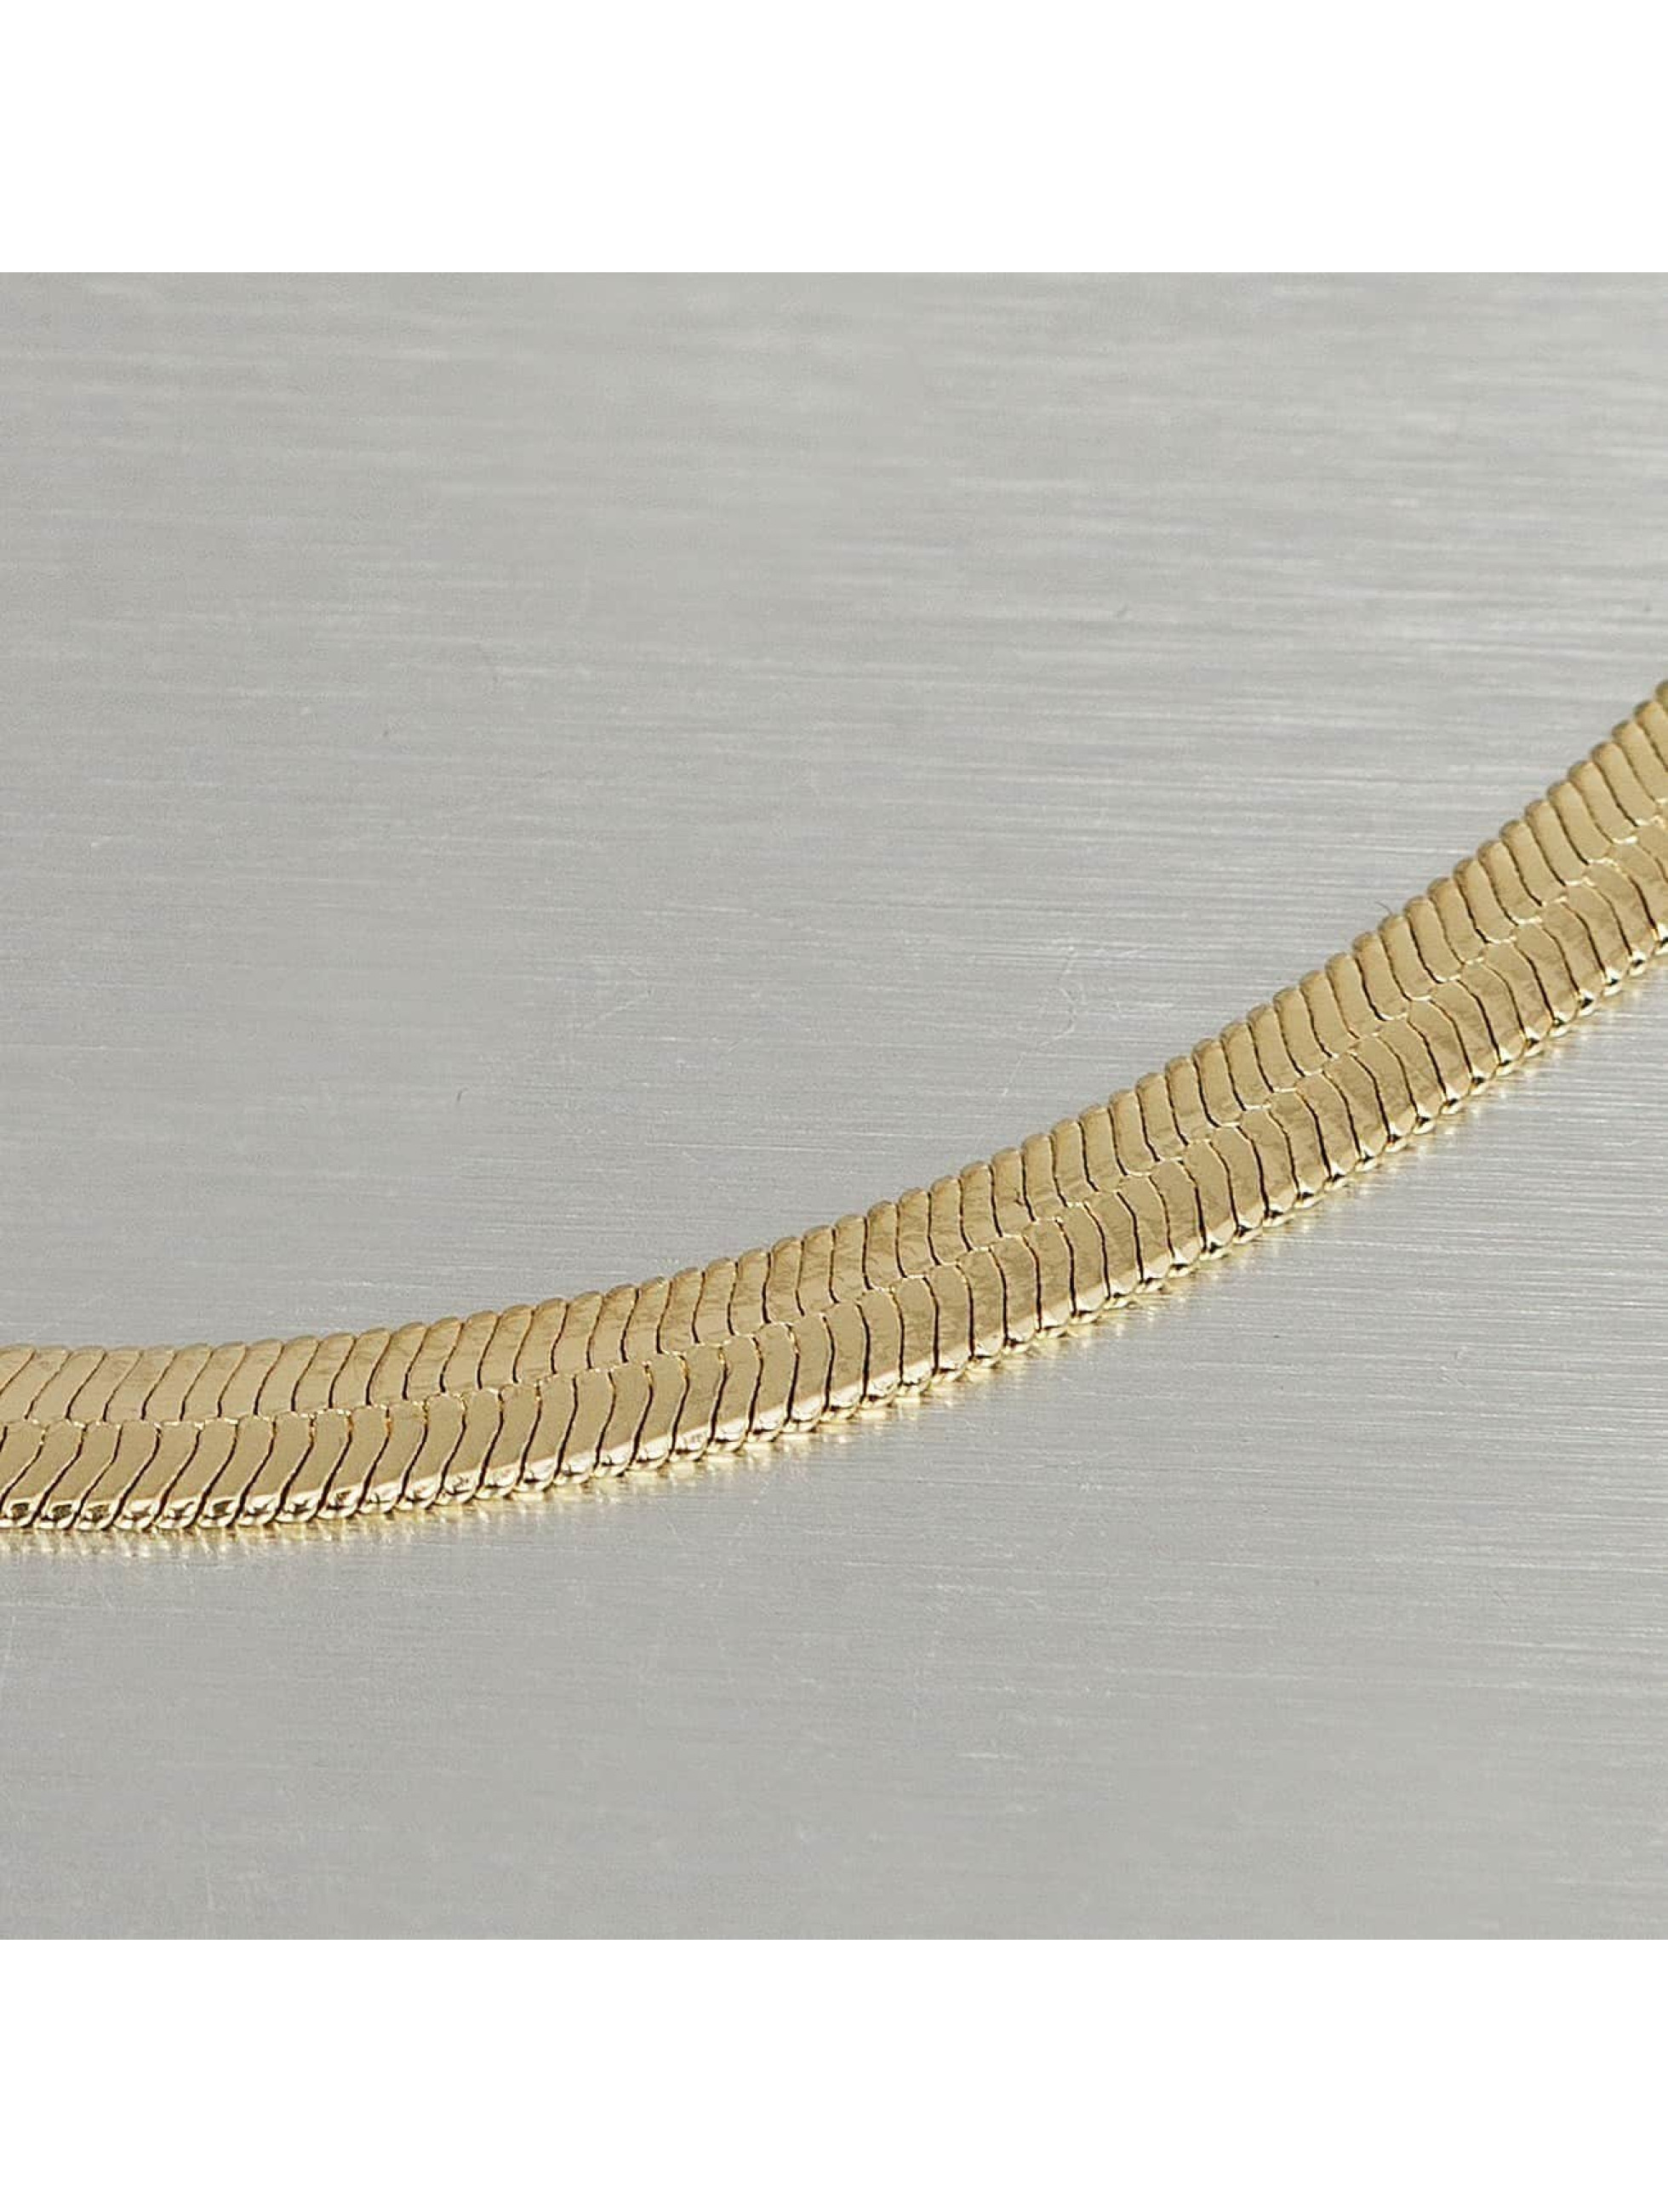 KING ICE Necklace Gold_Plated 5mm Thin Herringbone Chain gold colored